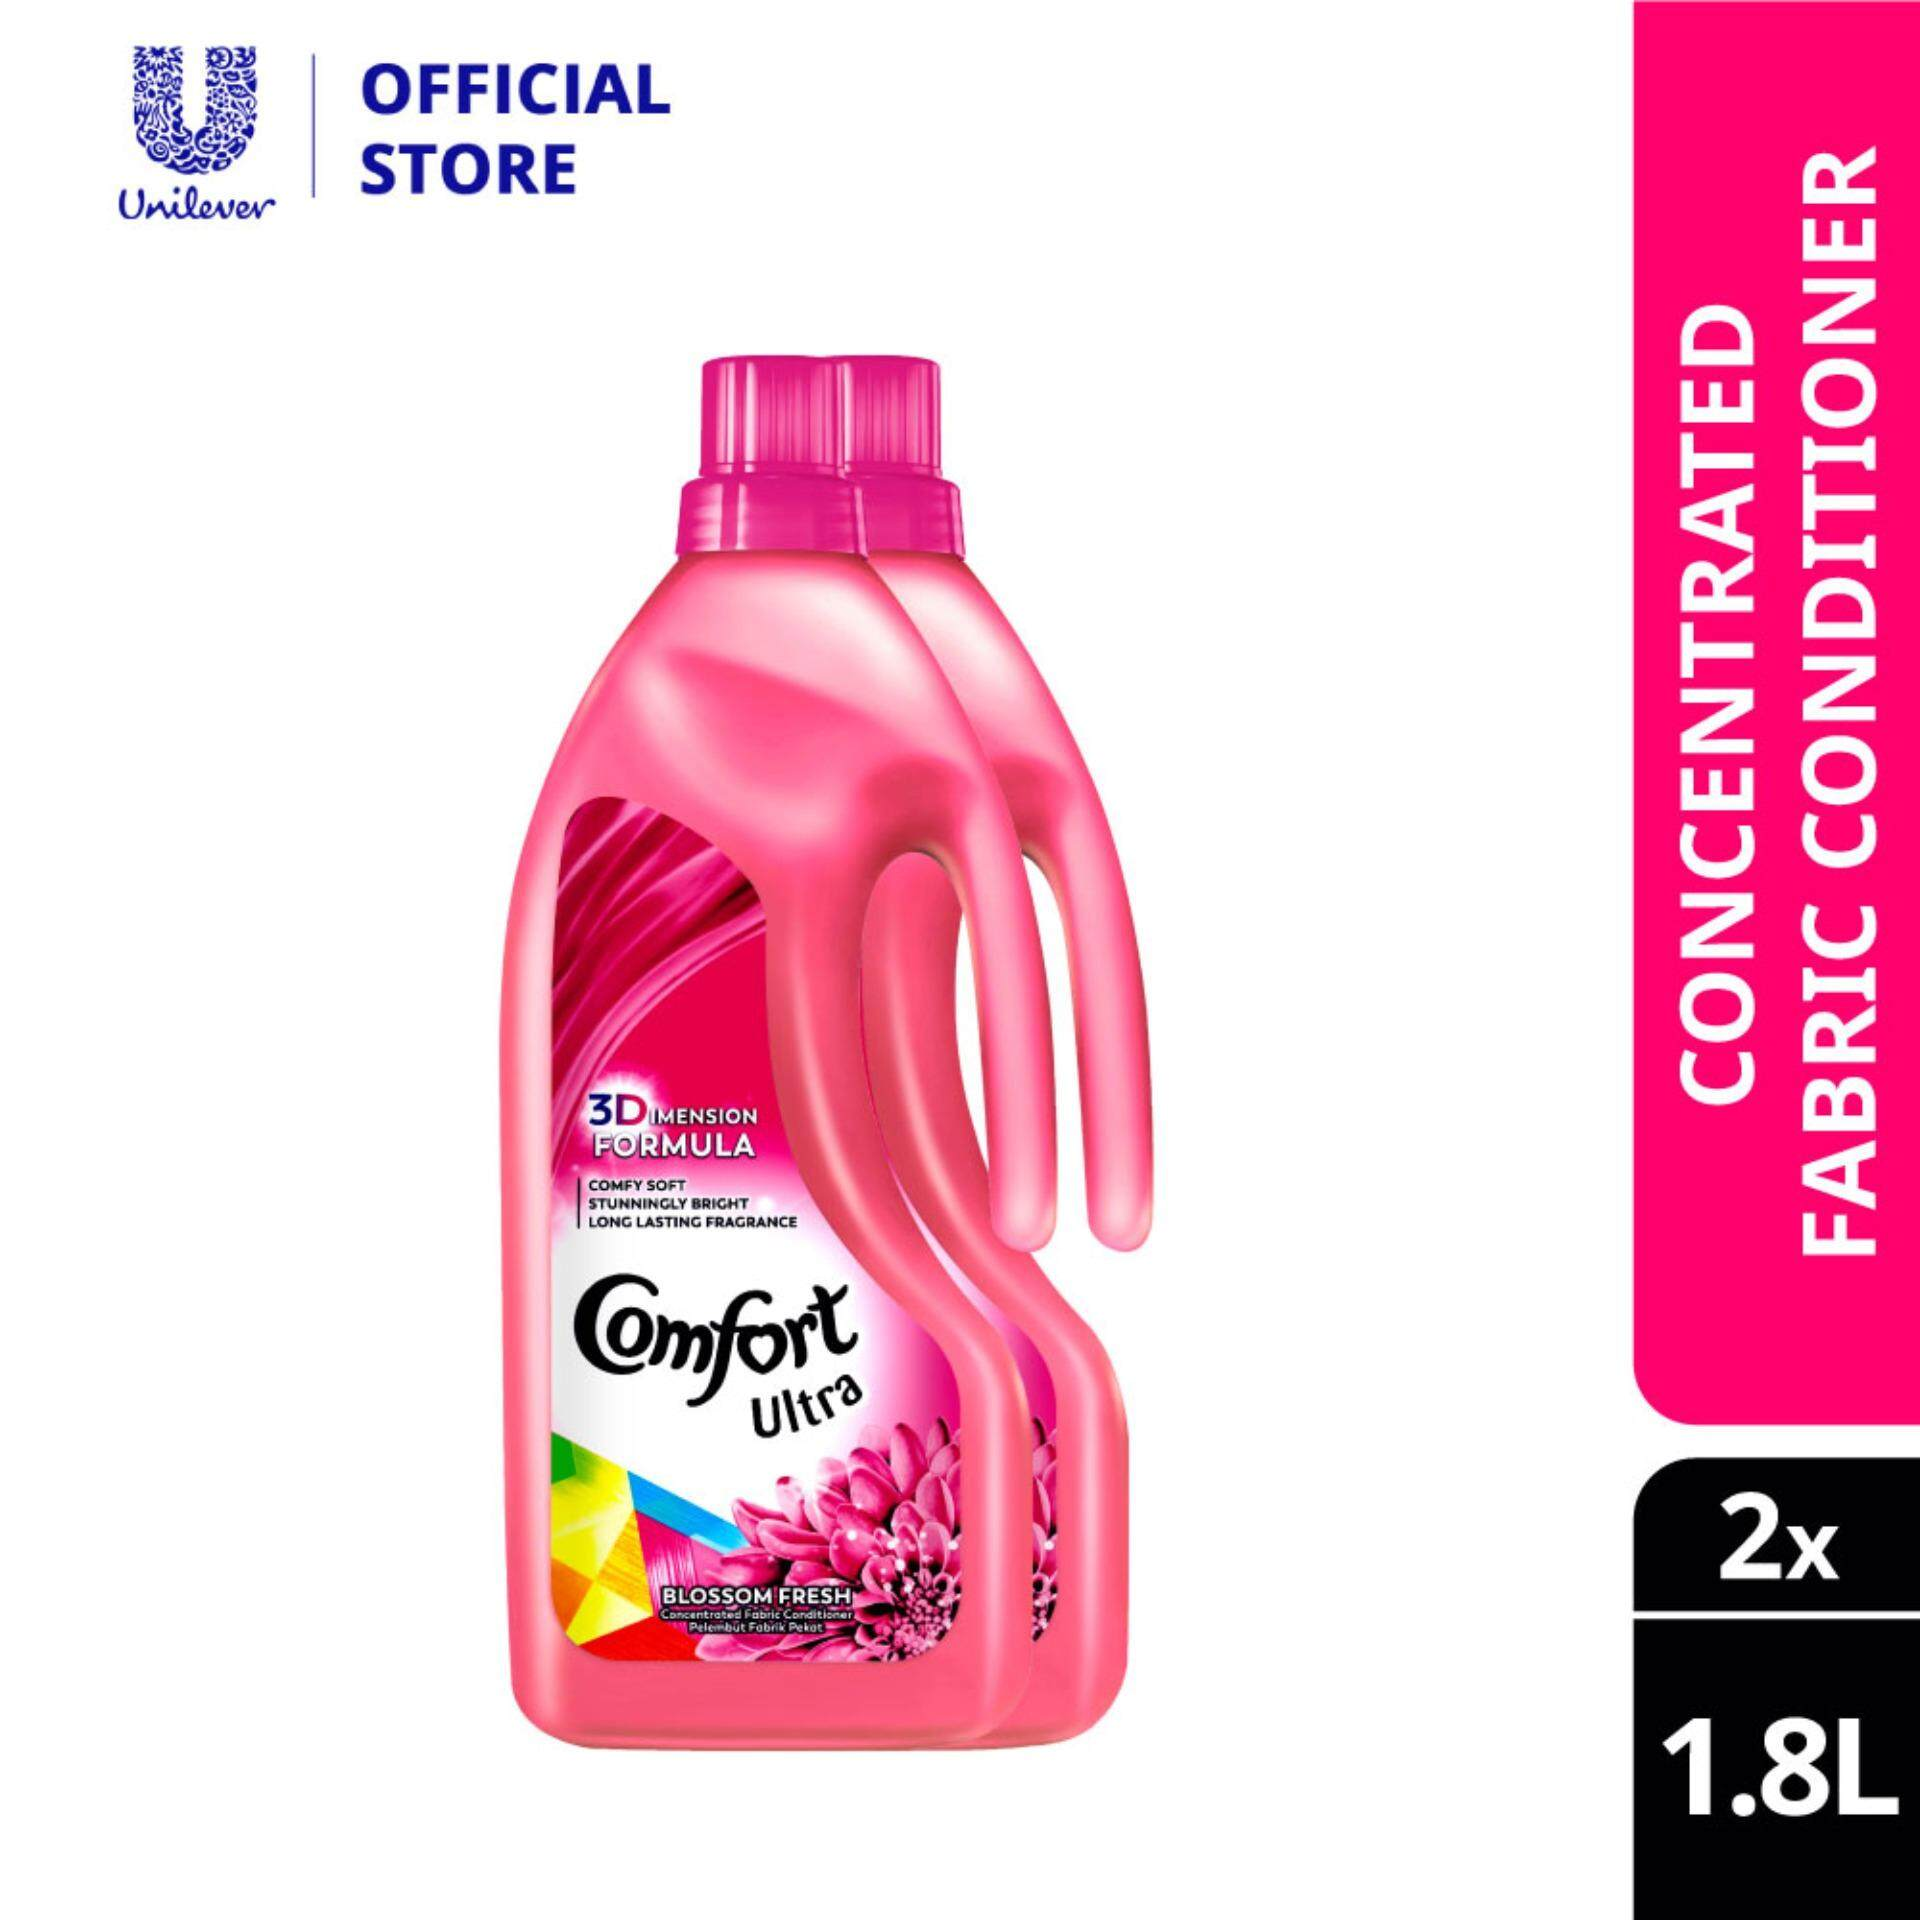 Comfort Concentrate Fabric Softener Blossom Fresh 1.8 L x 2